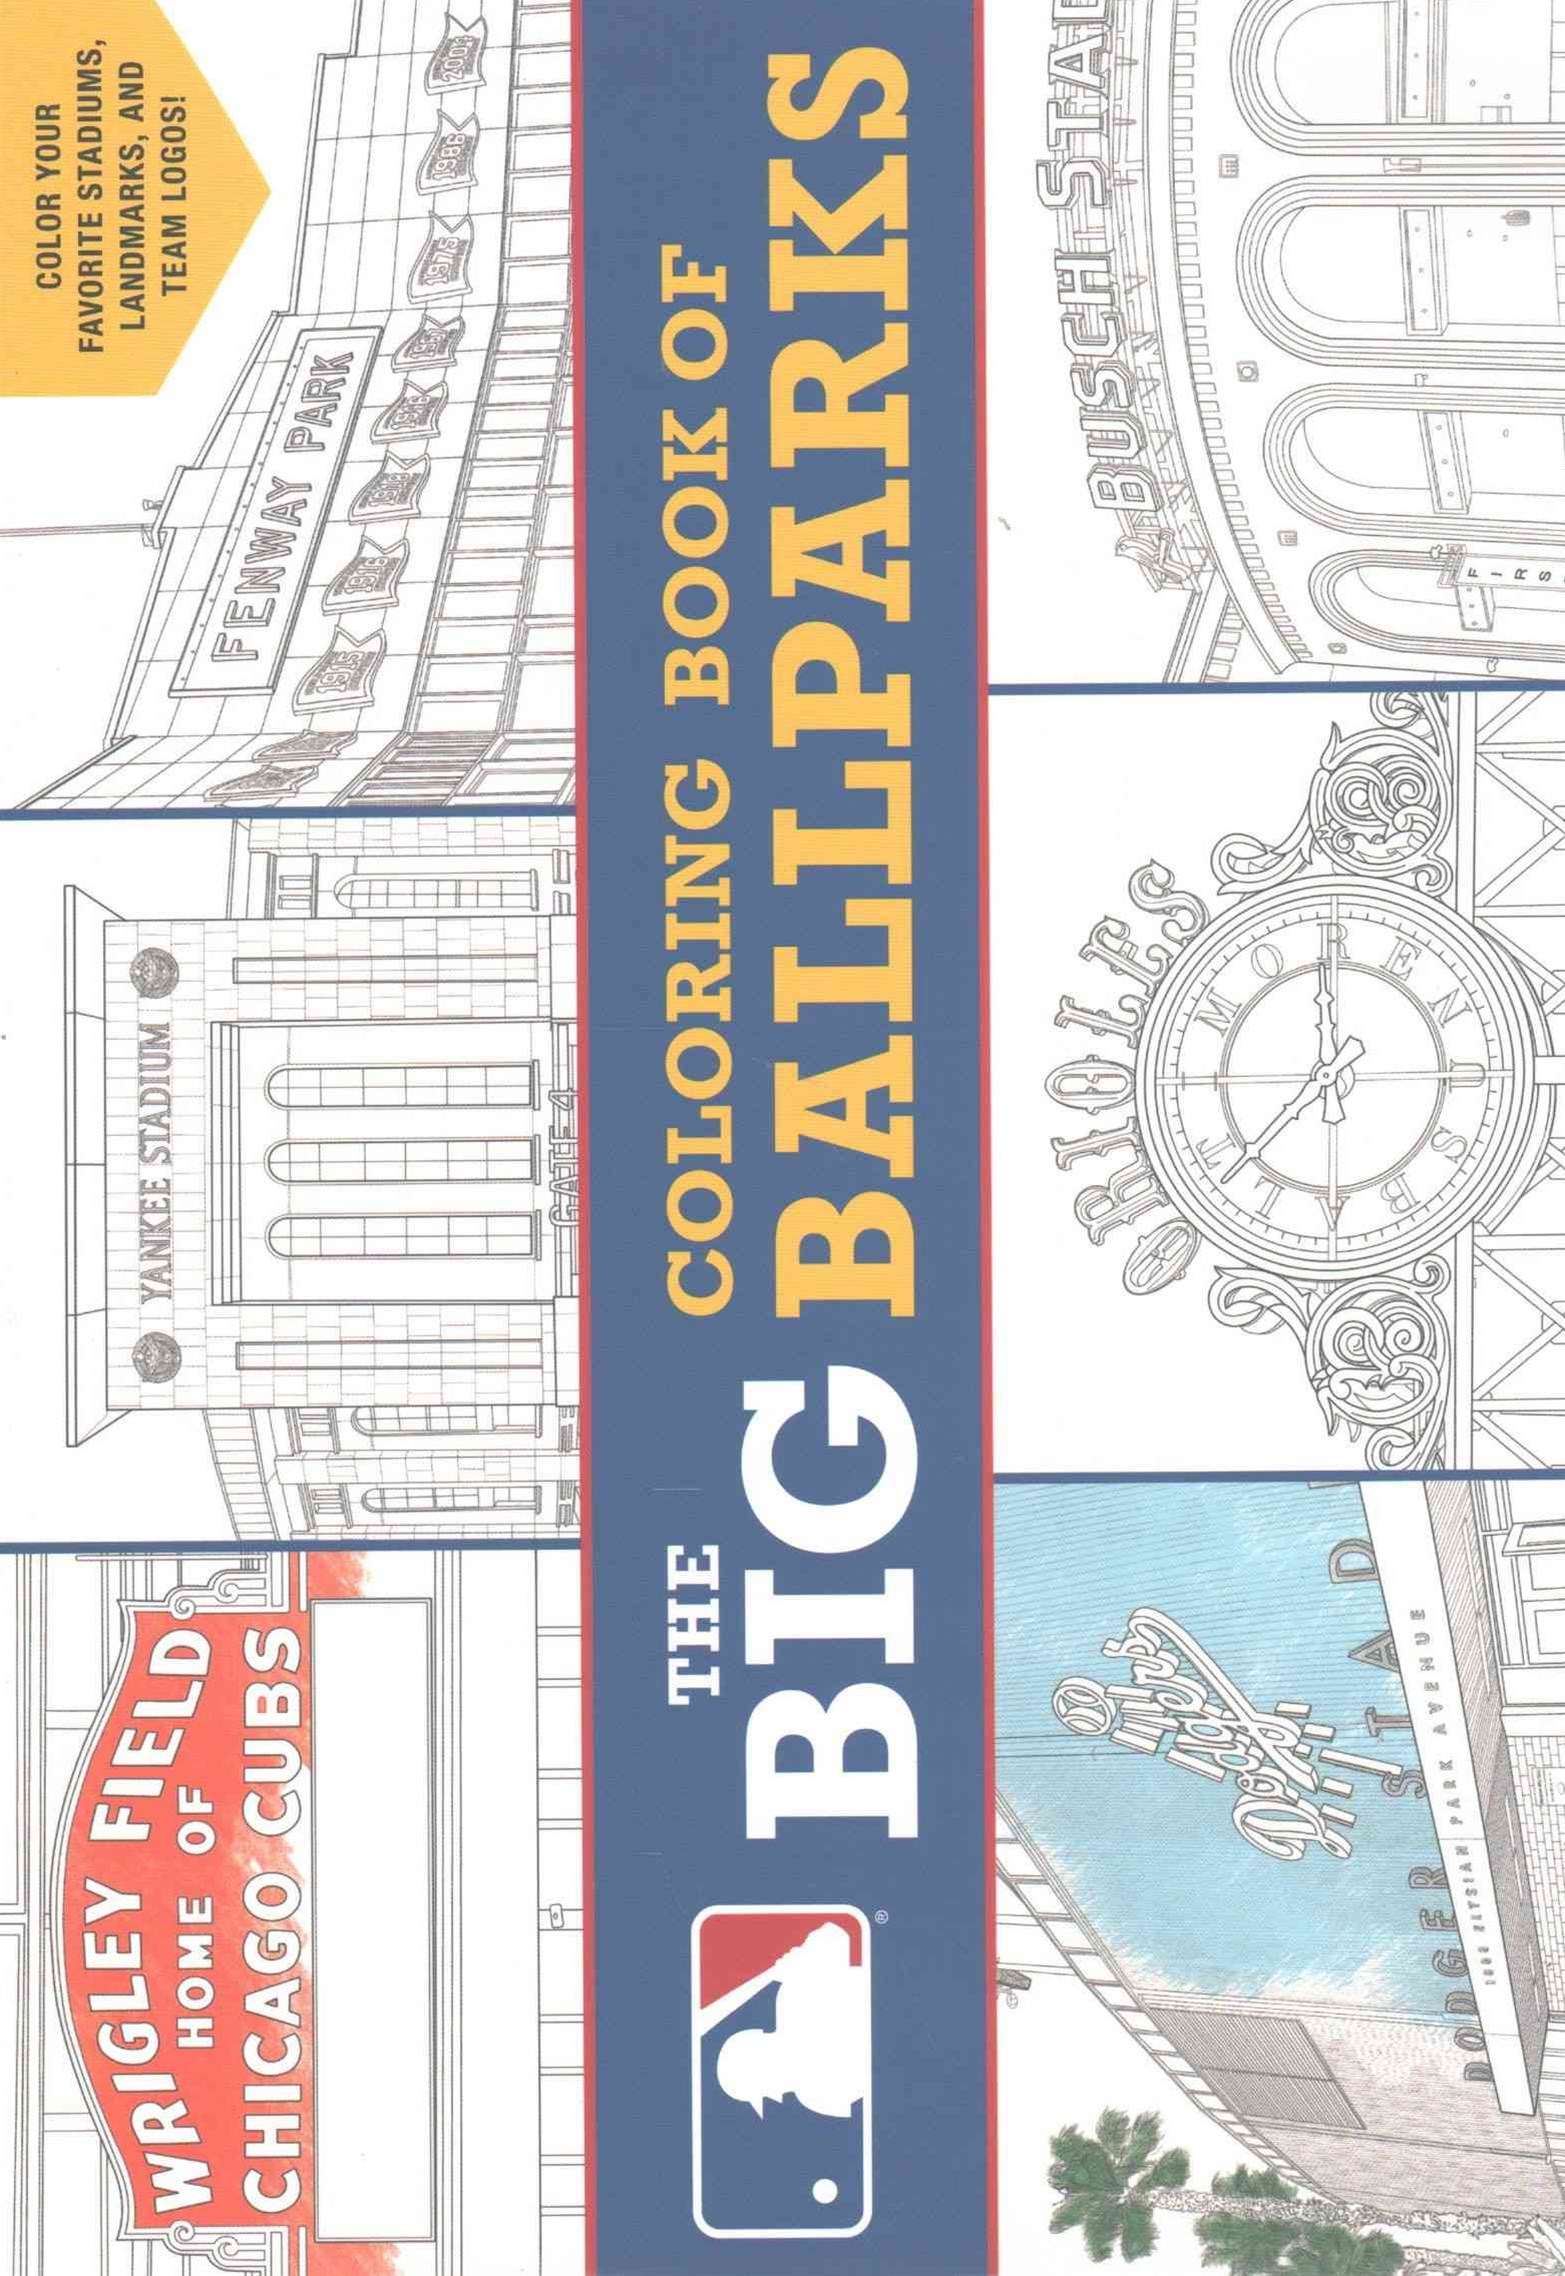 Major League Baseball - The Big Coloring Book of Stadiums